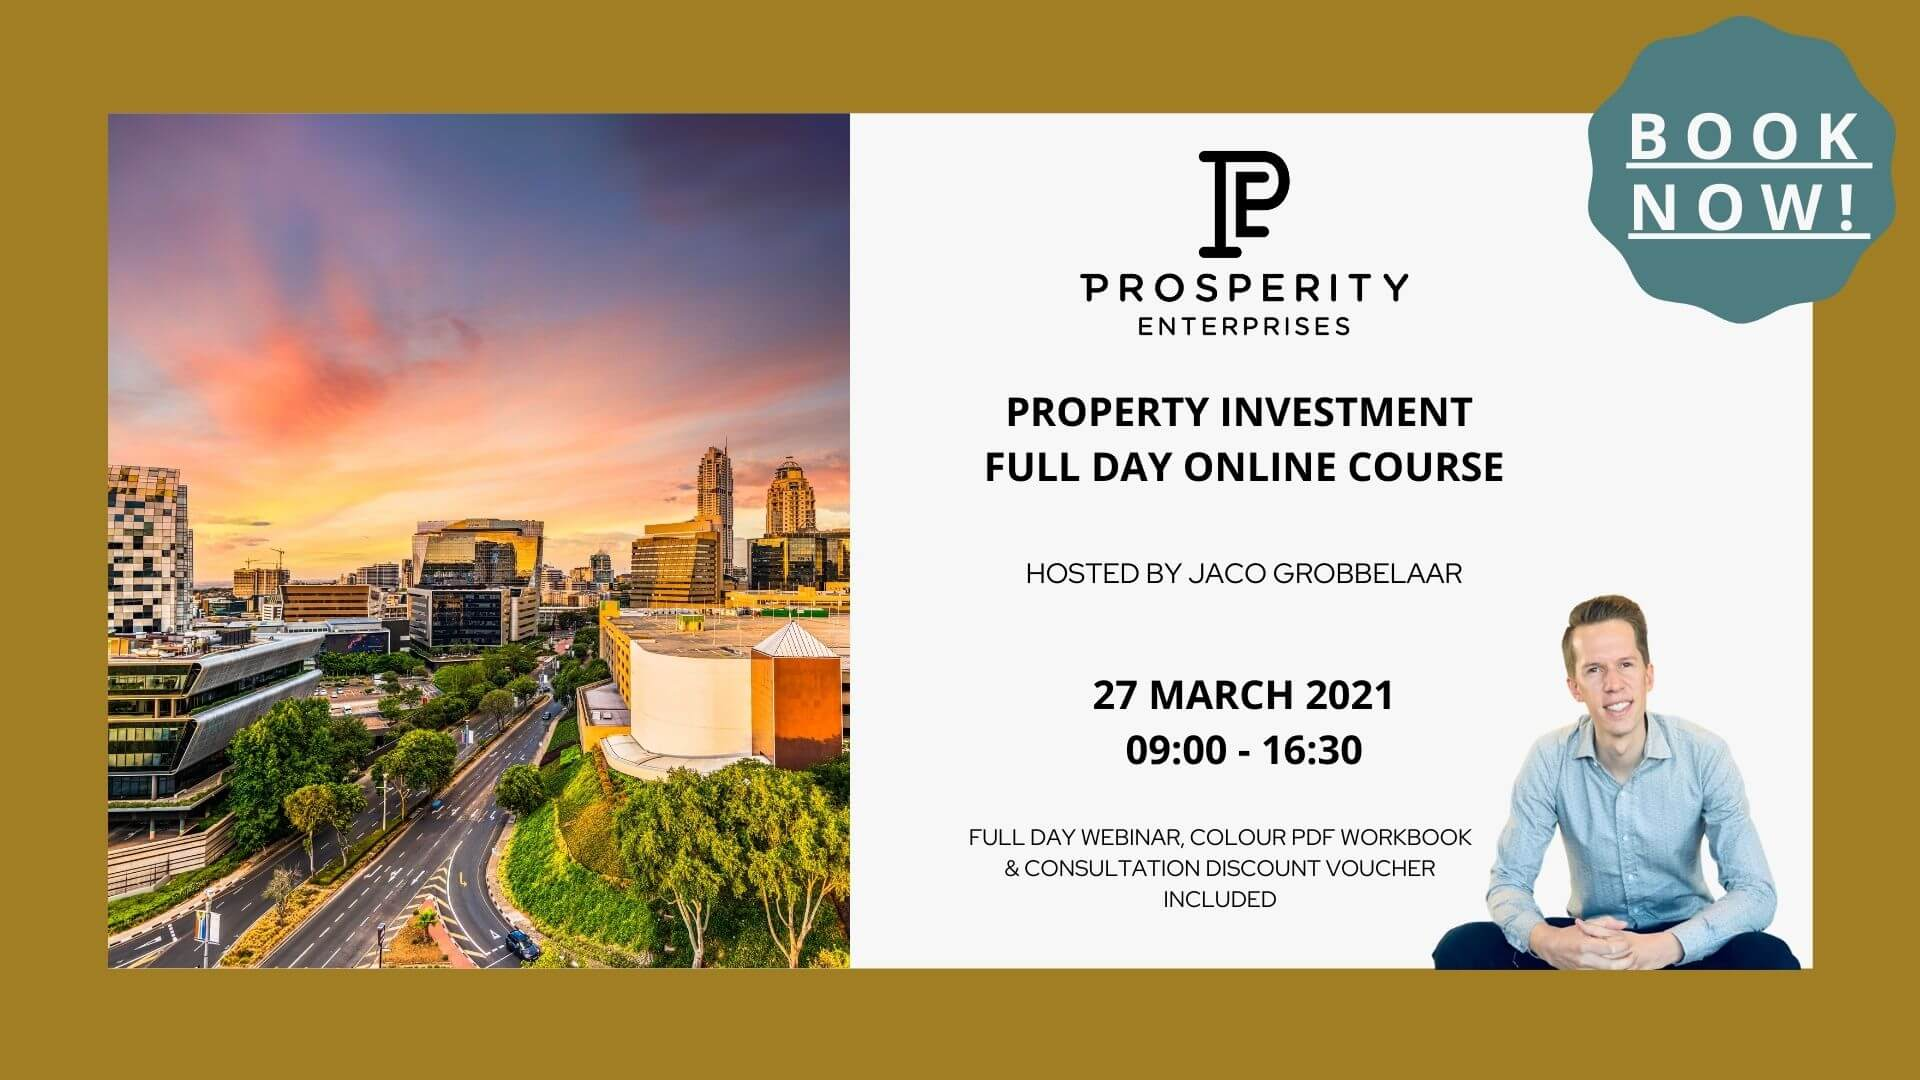 property-investment-webinar-full-day-online-course-27032021